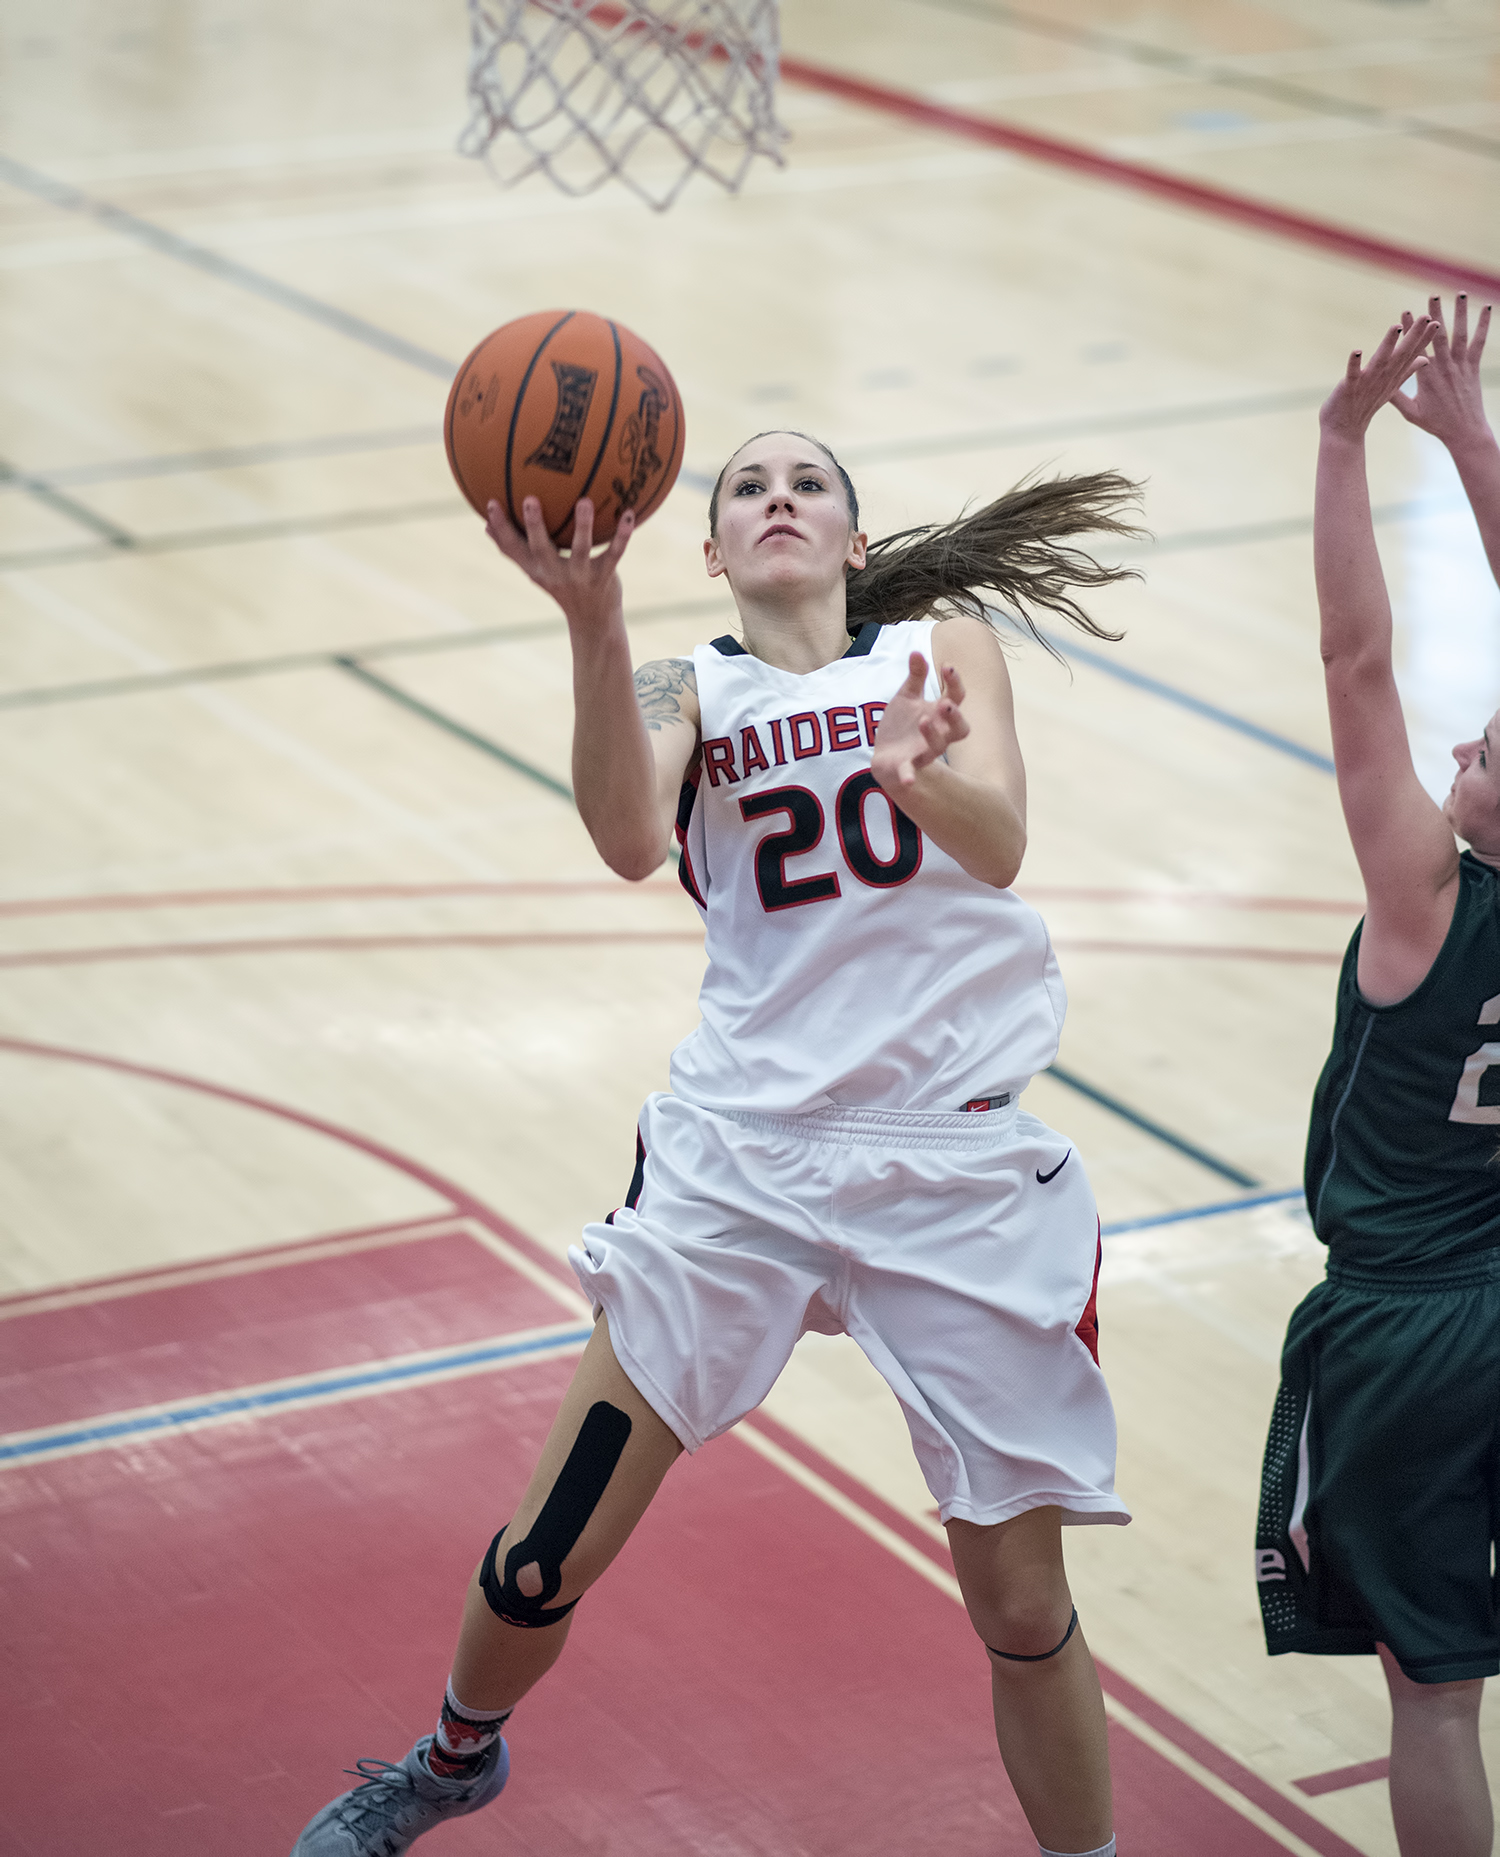 16J_6138-RAW-sou-womens-basketball-autumn-durand